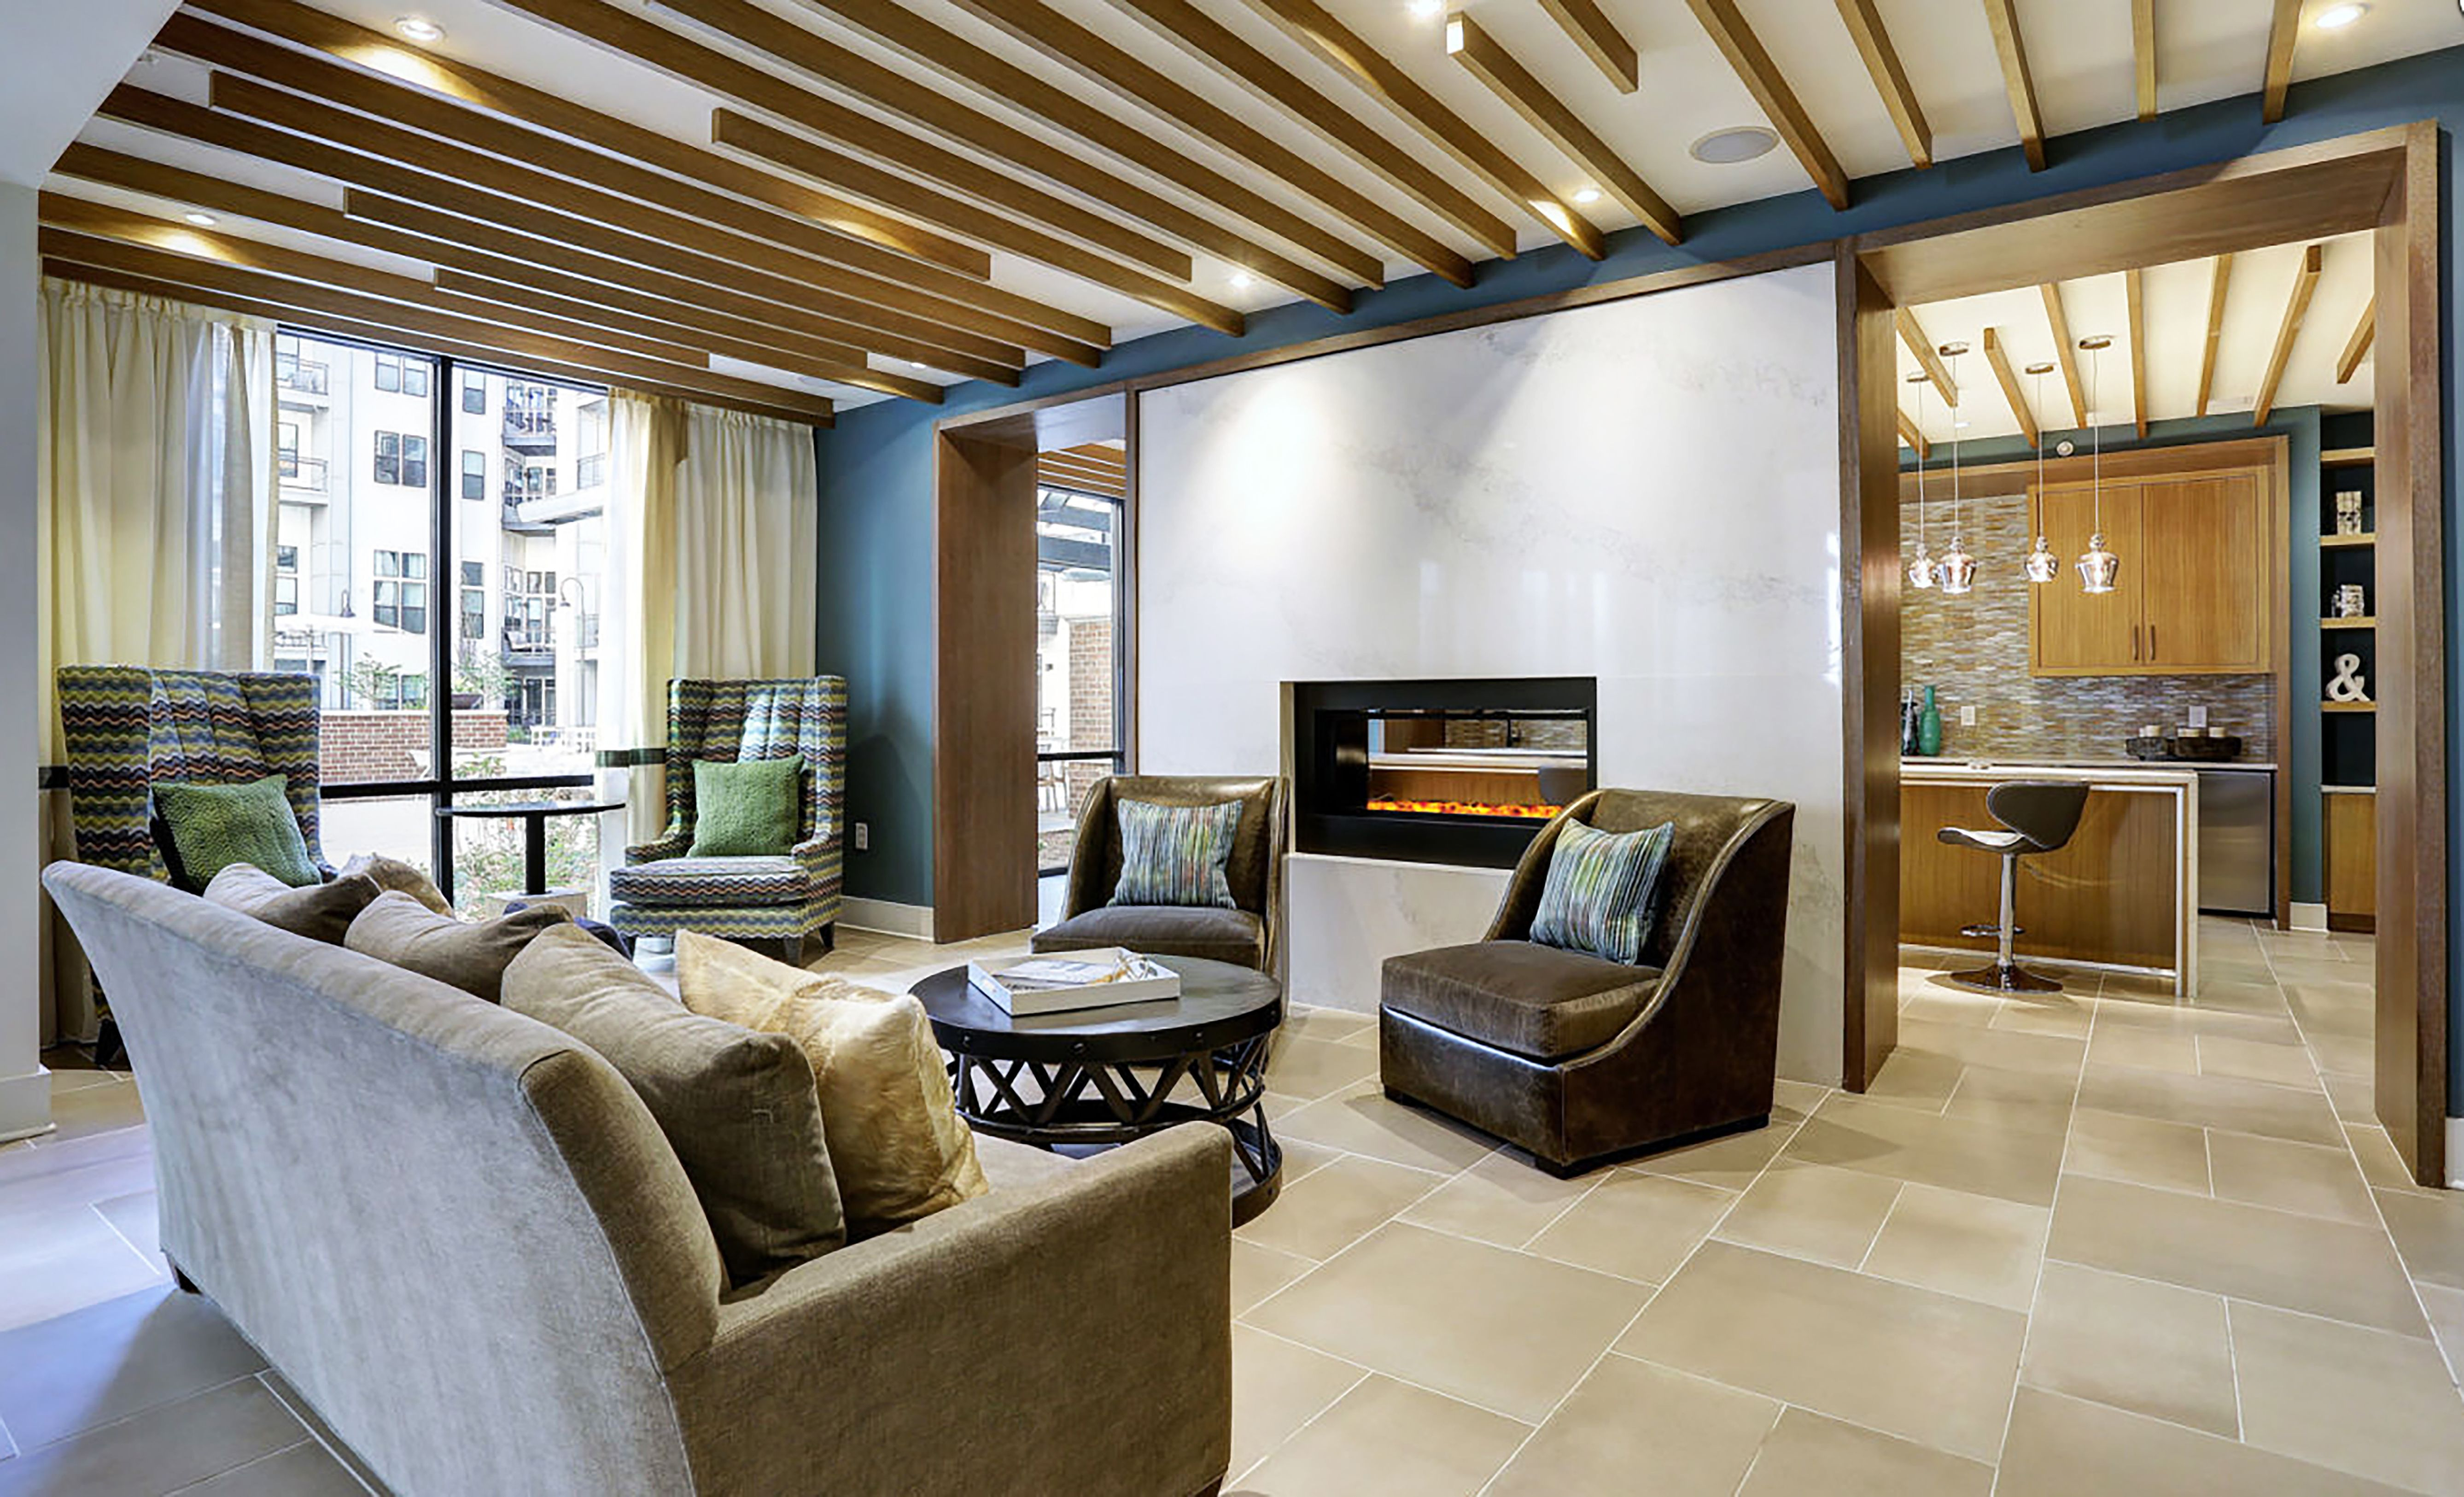 Apartment Amenity Space Design Ideas By Beasley Henley Interior